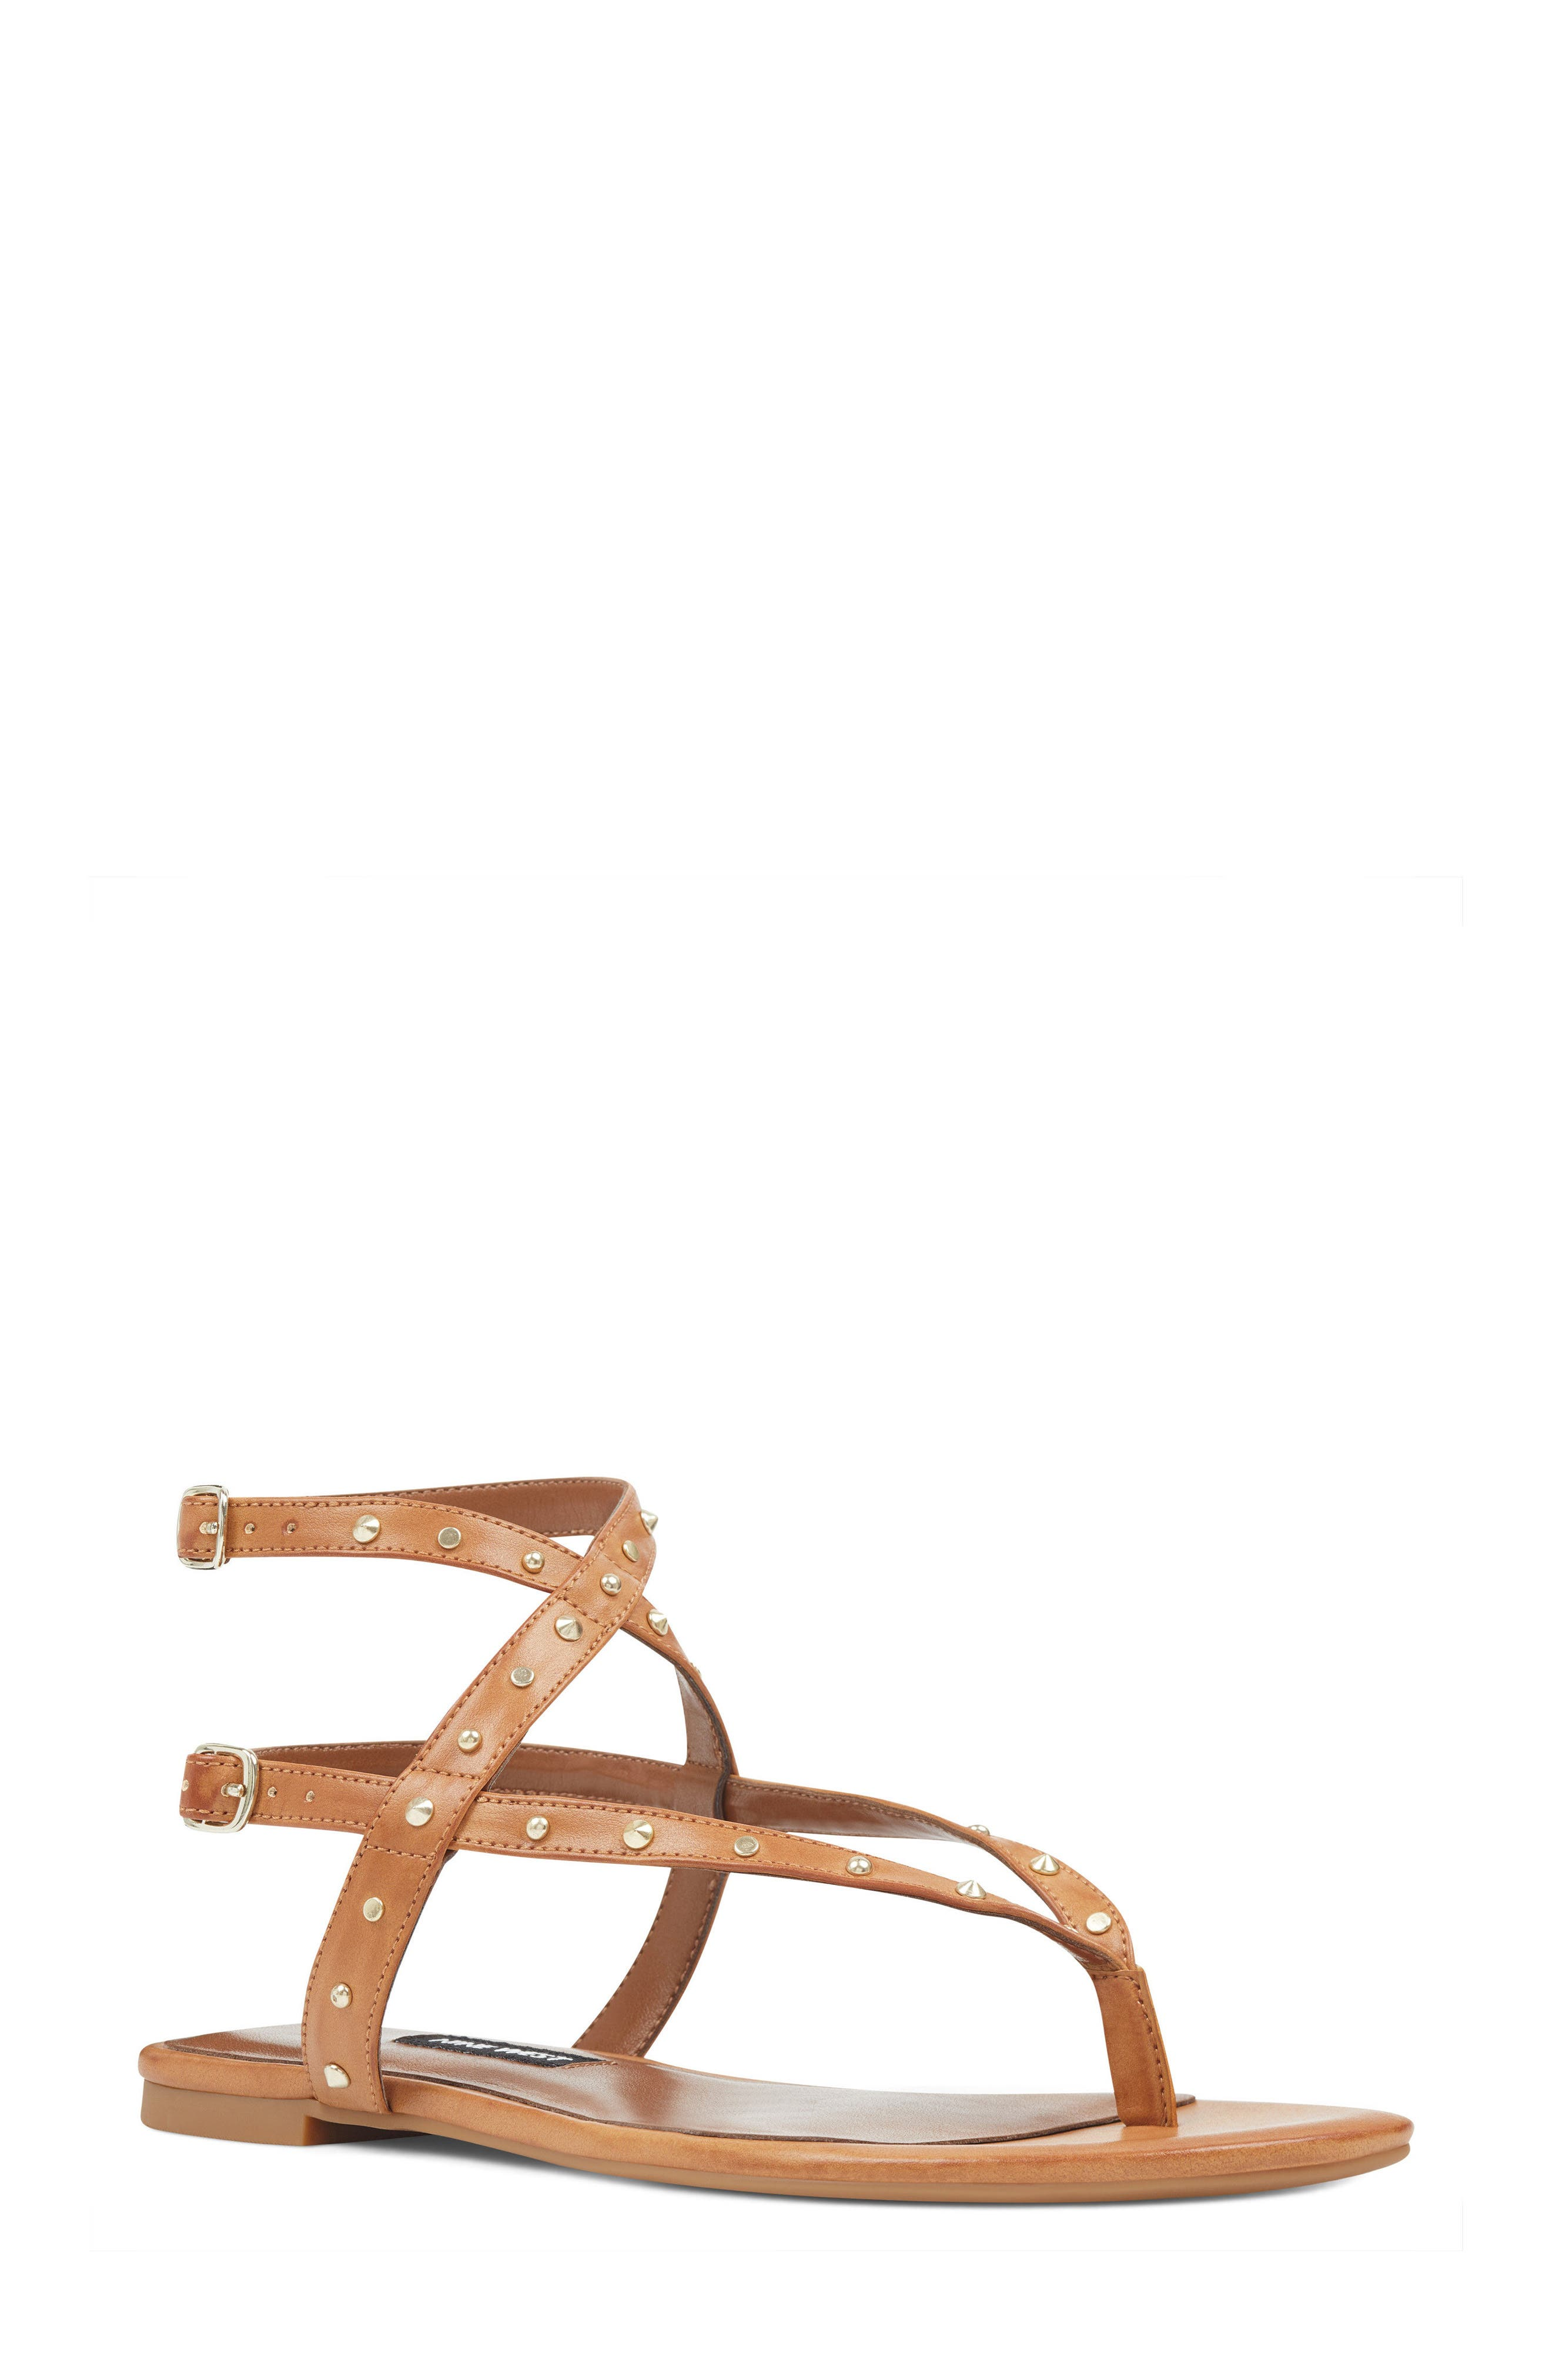 Simcha Studded Wraparound Sandal,                         Main,                         color, Dark Natural Faux Leather